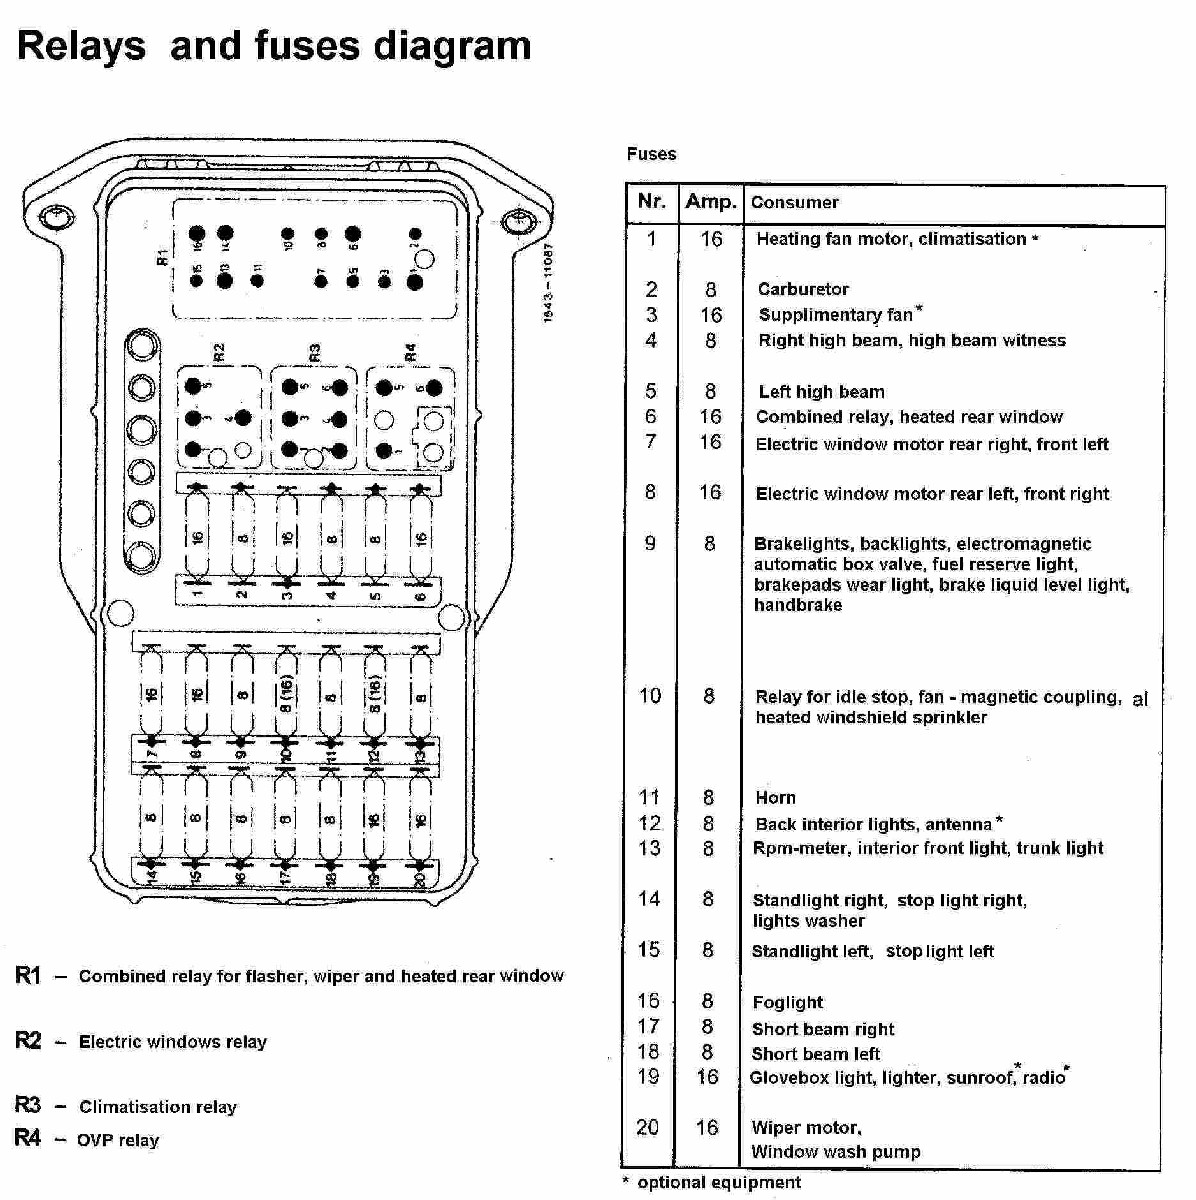 mercedes sprinter fuse box diagram what is 7 2 surround sound heated washers not heating on w203 estate benz